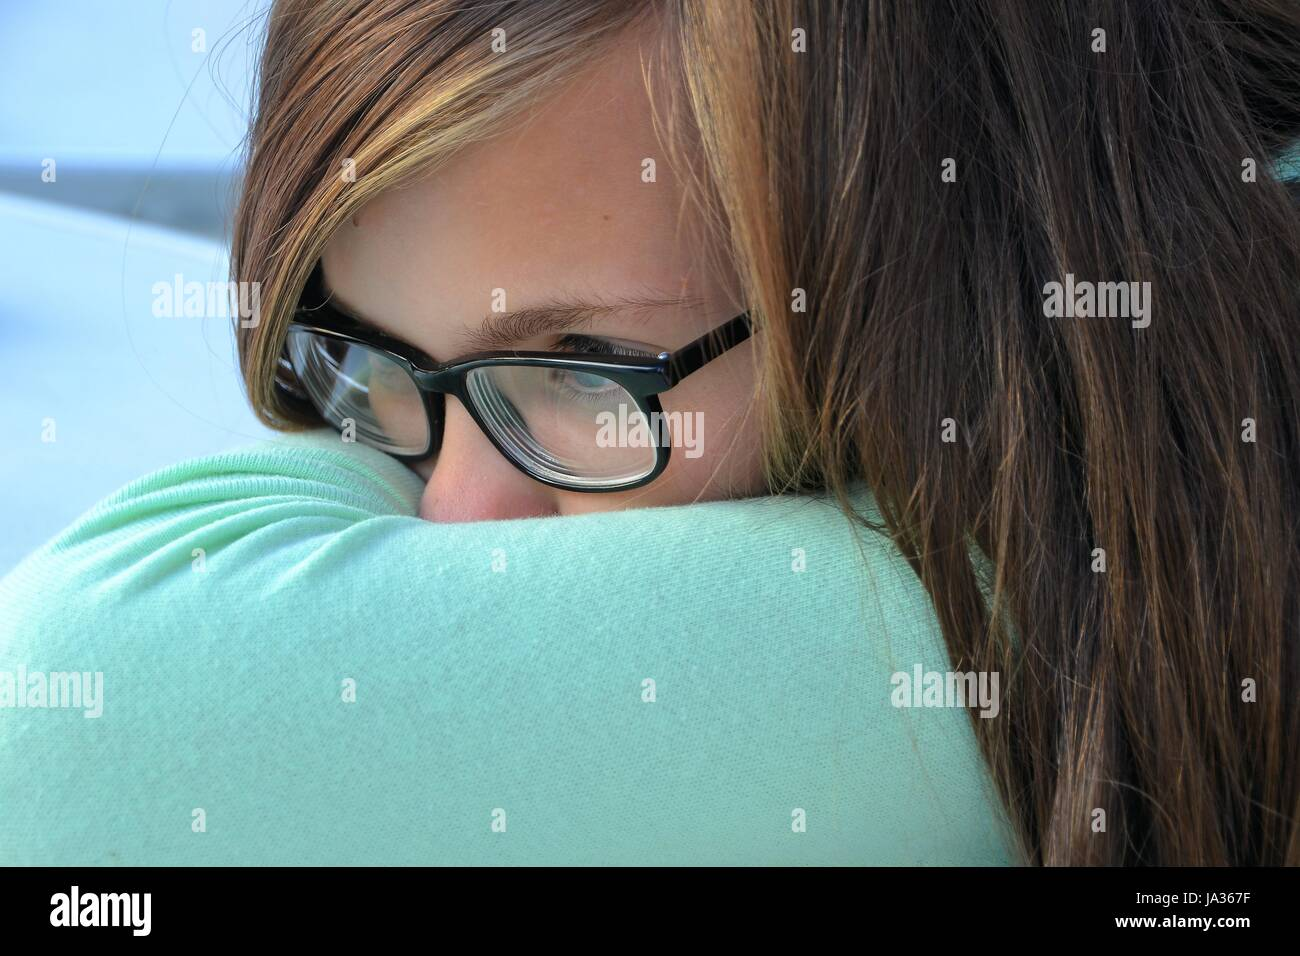 meditative, teen, meditate, boring, teenager, lovelorn, puberty, reflexion, Stock Photo